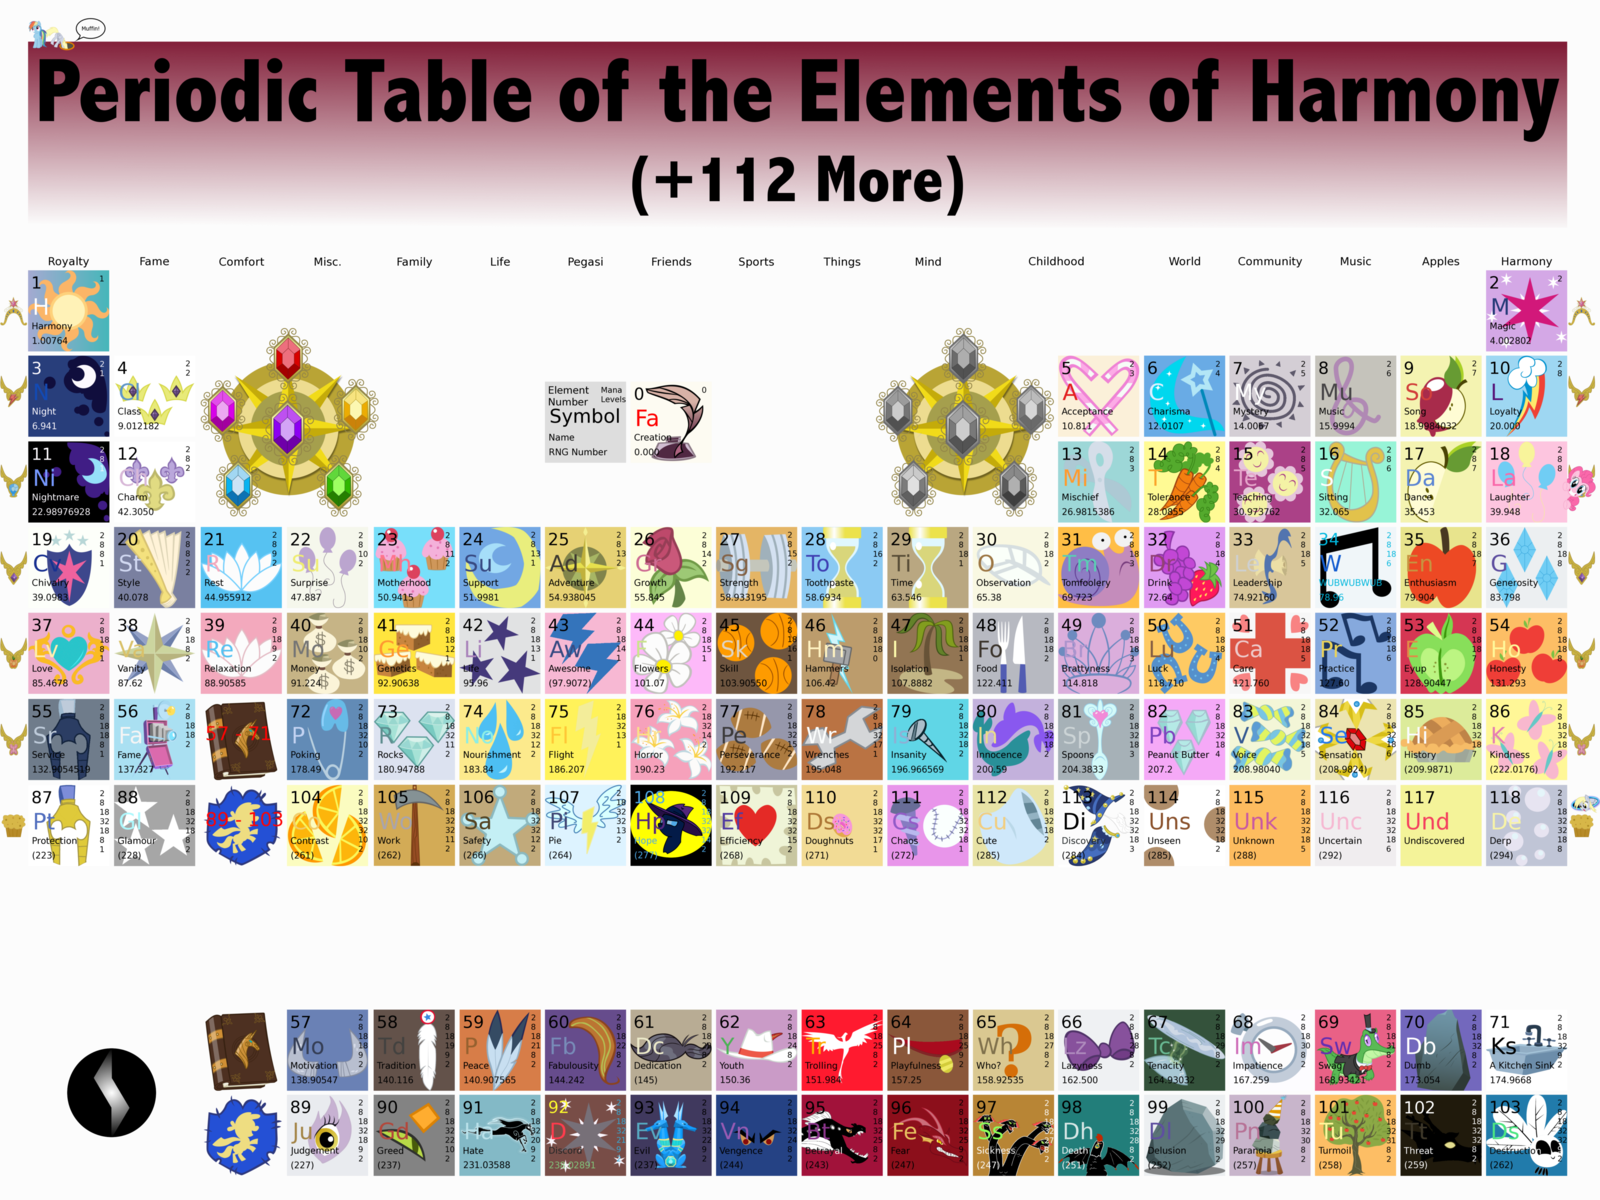 Periodic table of the elements of harmony by metalgearsamus periodic table of the elements of harmony by metalgearsamusiantart on deviantart urtaz Image collections